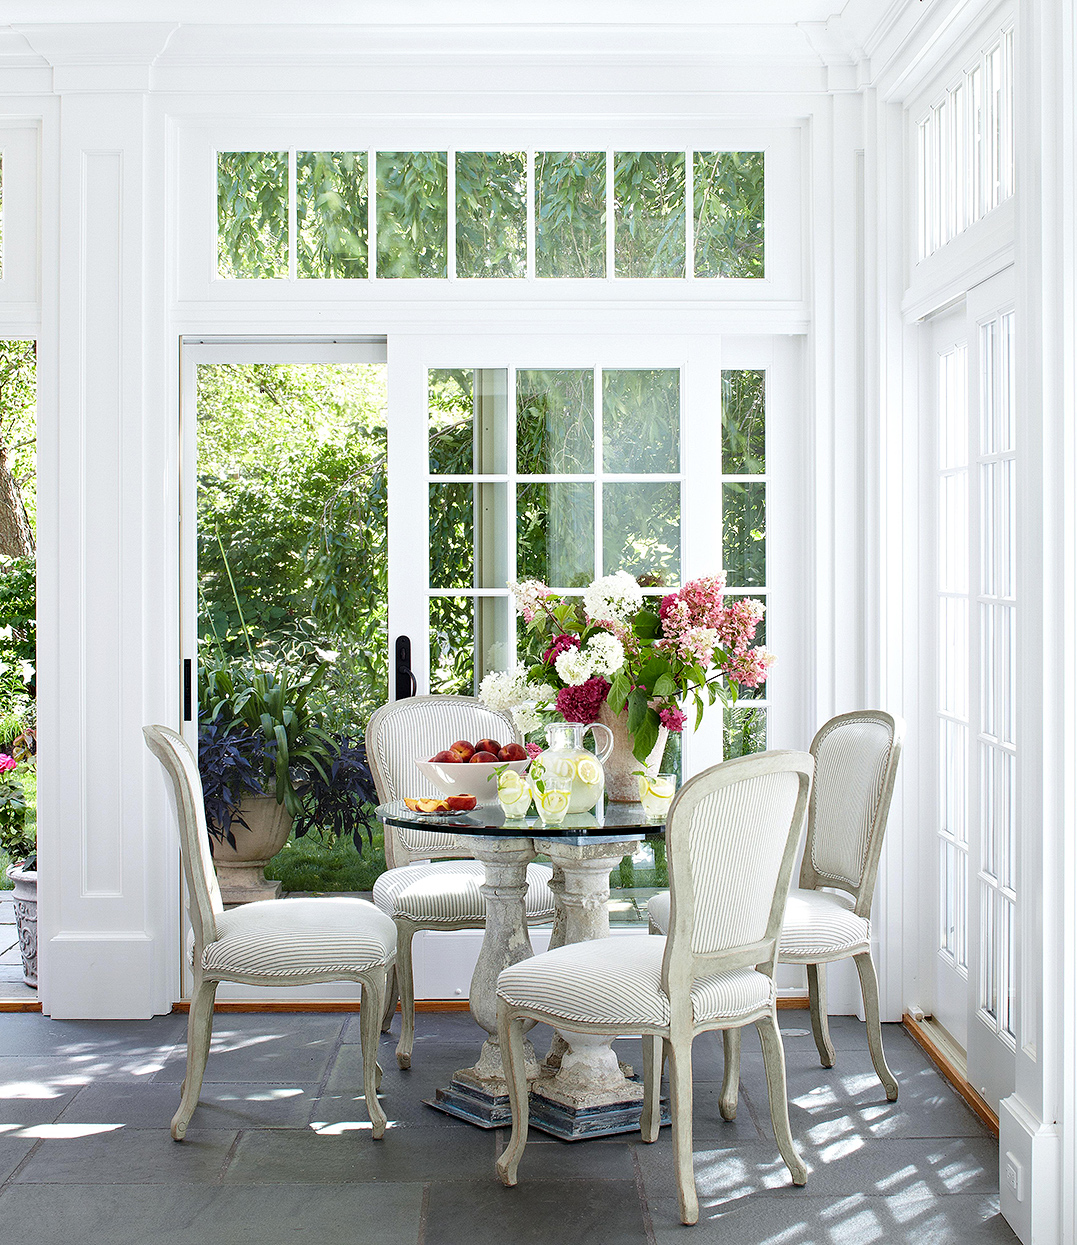 sunroom corner with white dining chairs and table